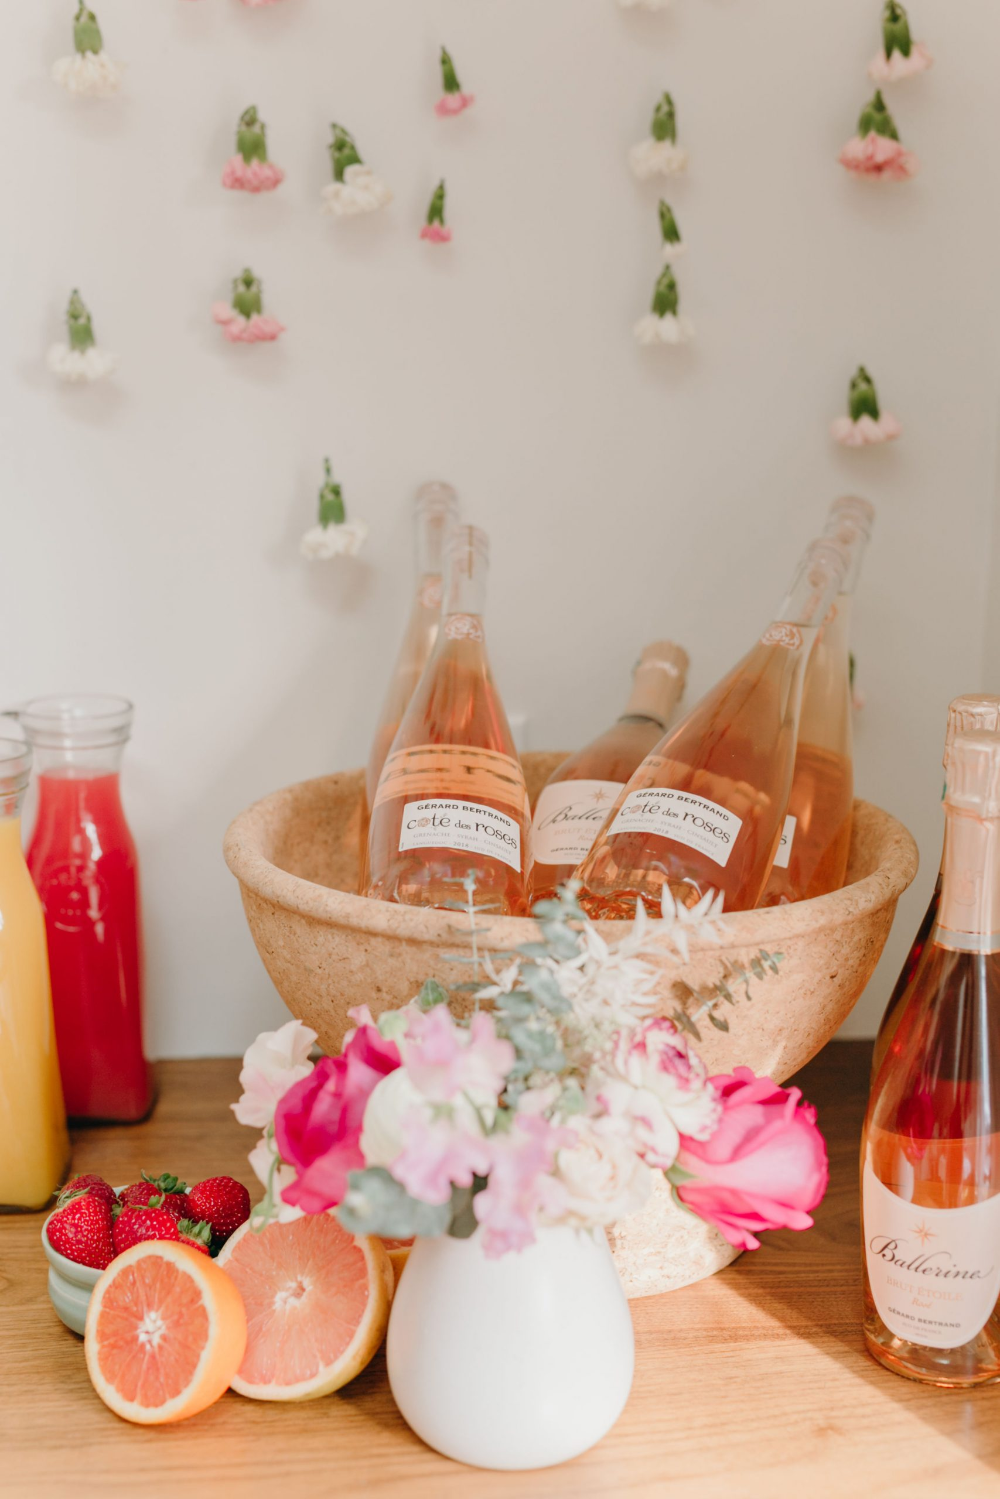 How to Host a Galentine's Day Brunch for your girlfriends